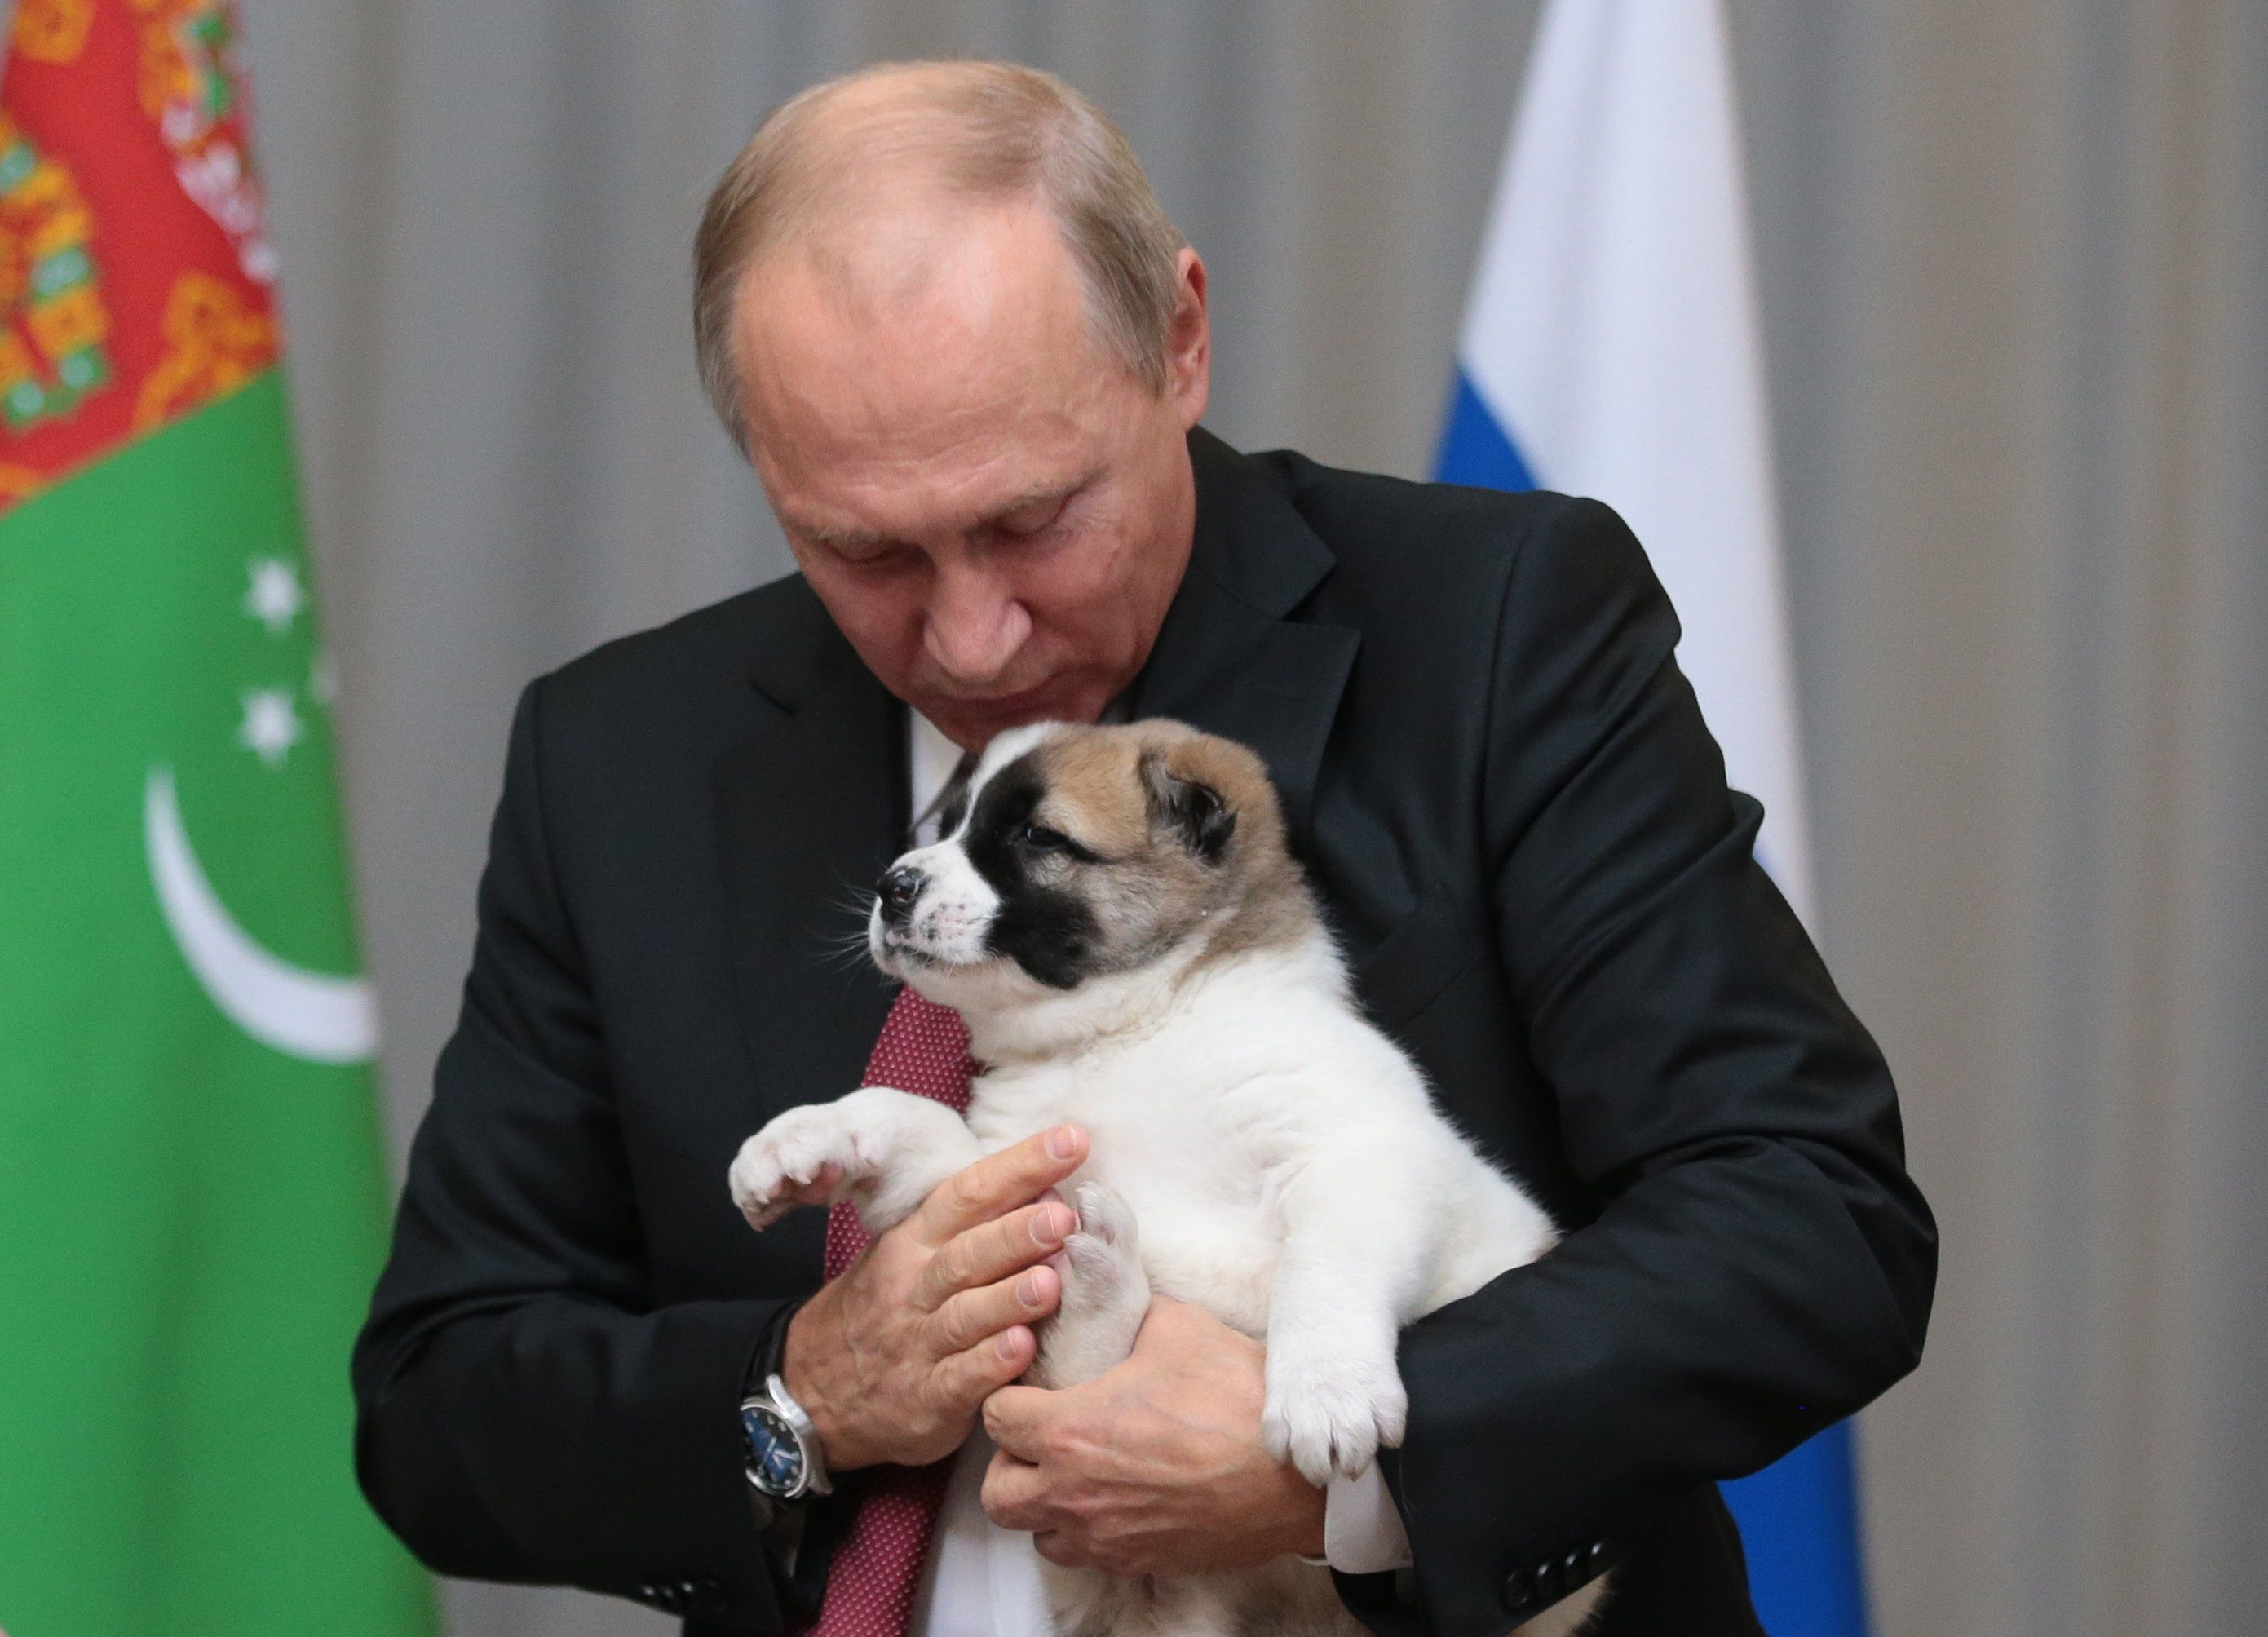 Vladimir Putin's Love For His New Puppy Is The Internet's New